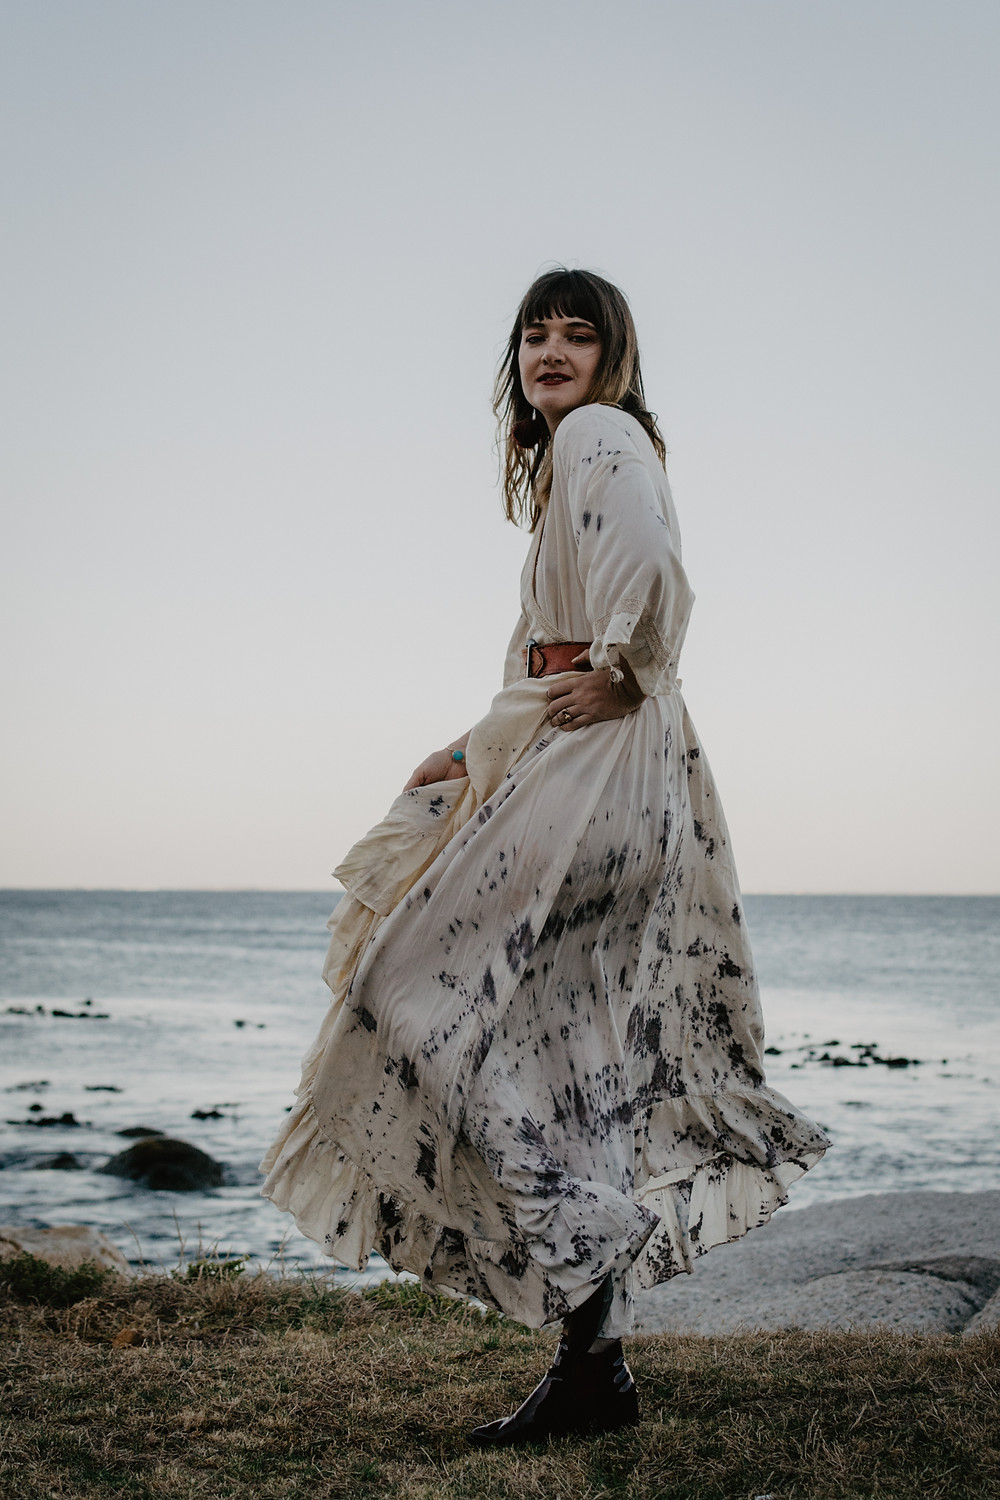 Model posing in bohemian dress with ocean view in background